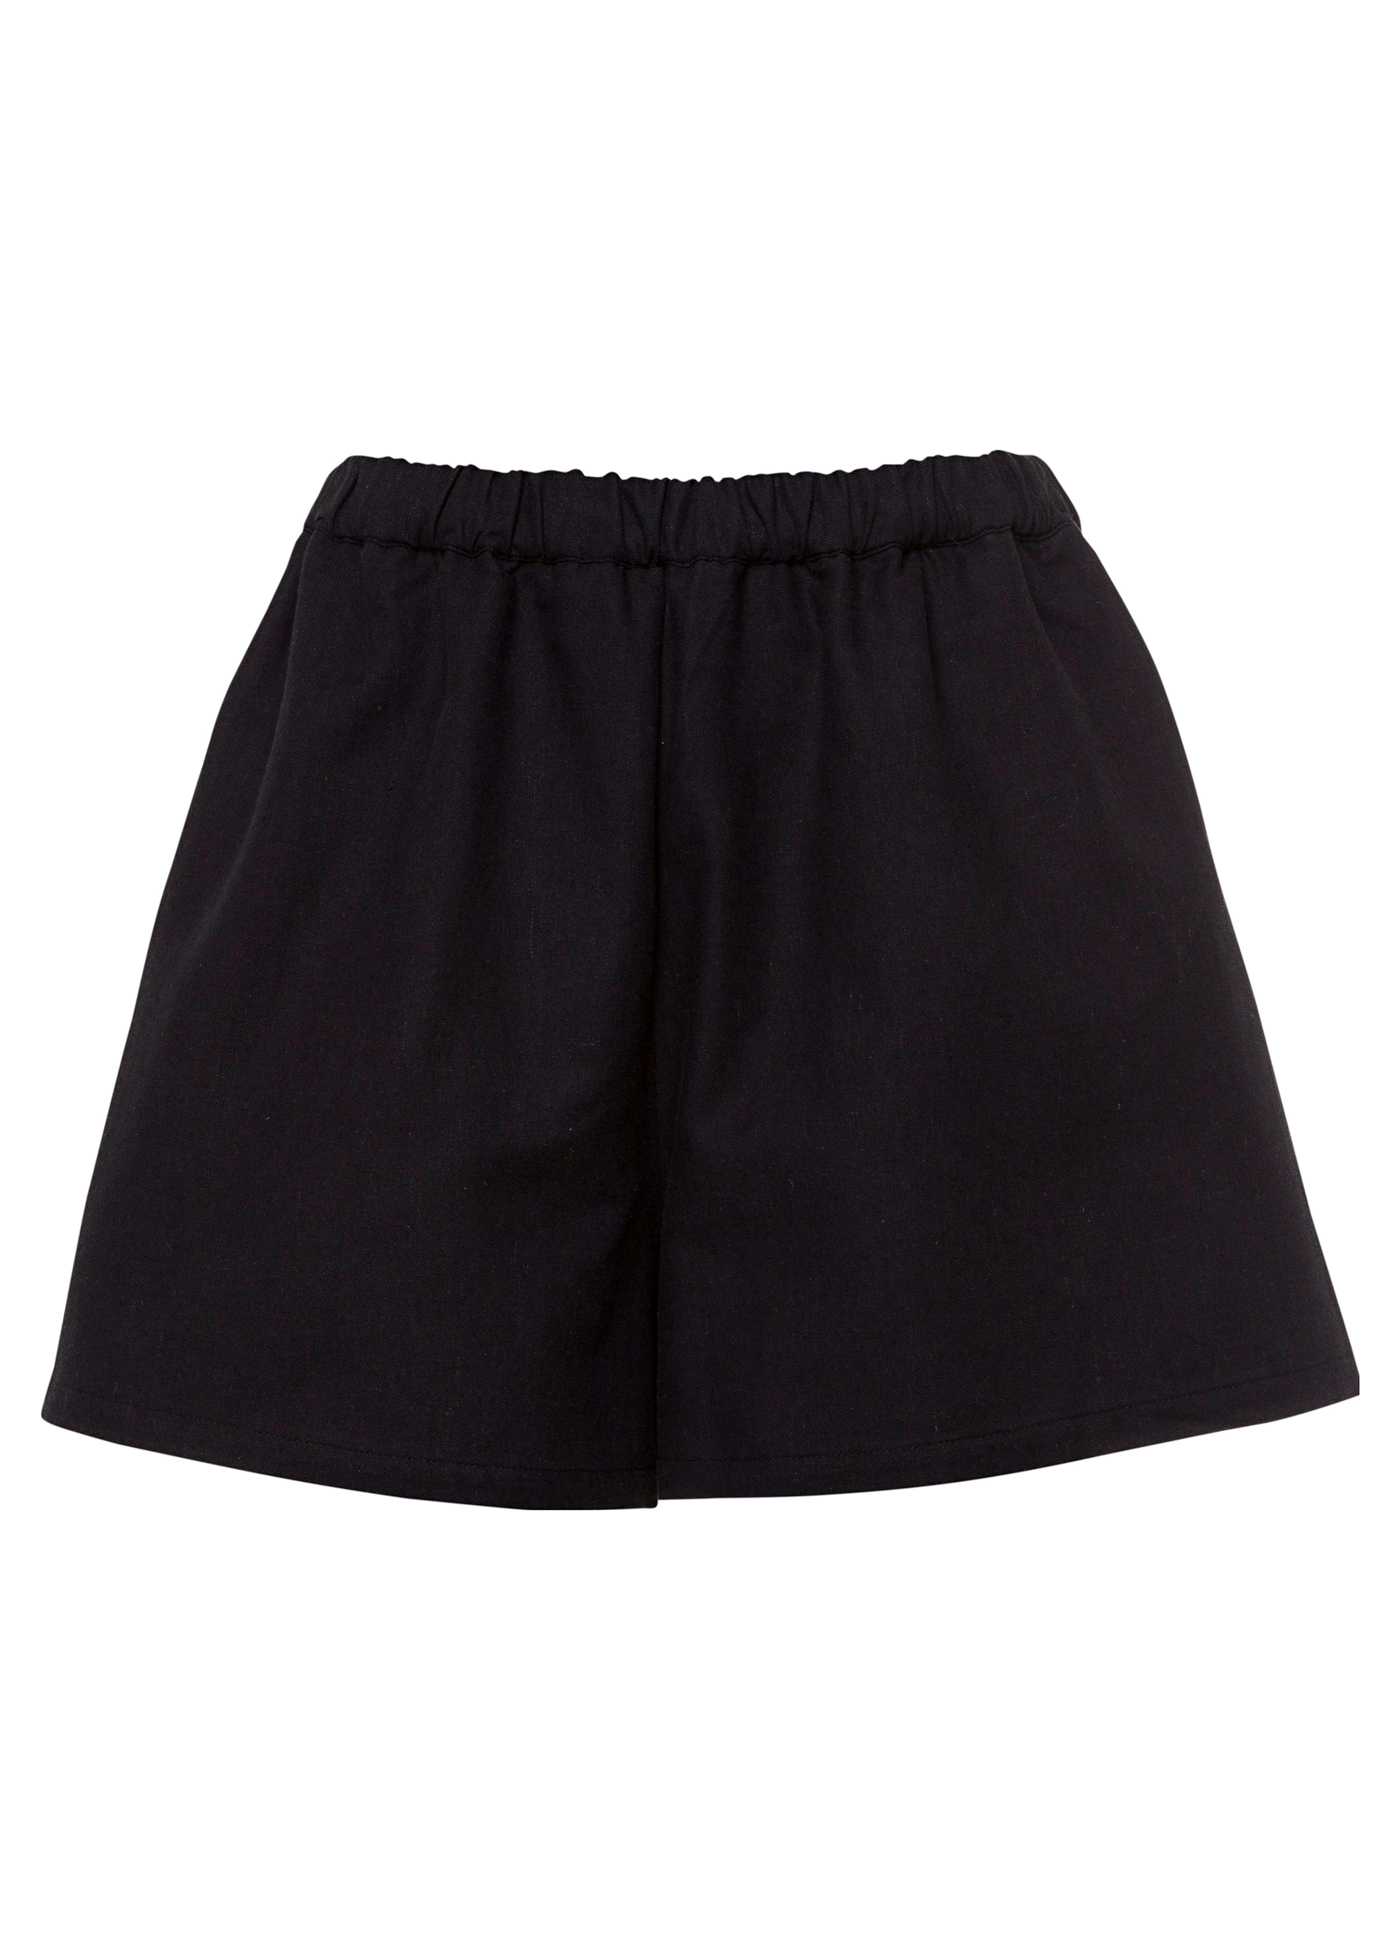 Thea Shorts image number 0